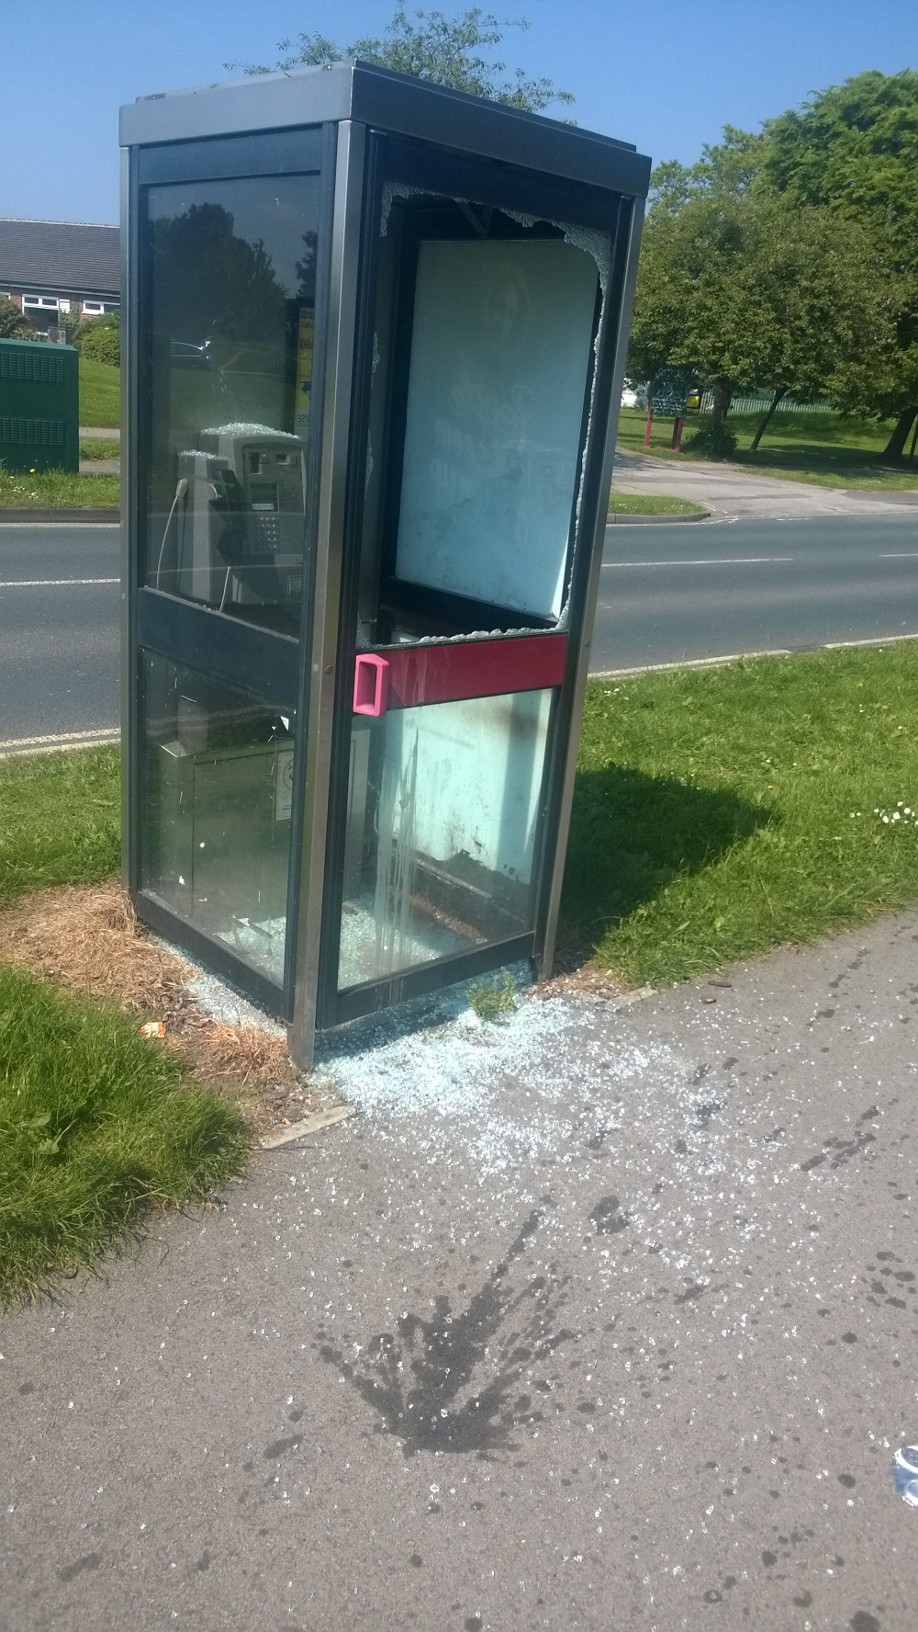 Vandalised phone box